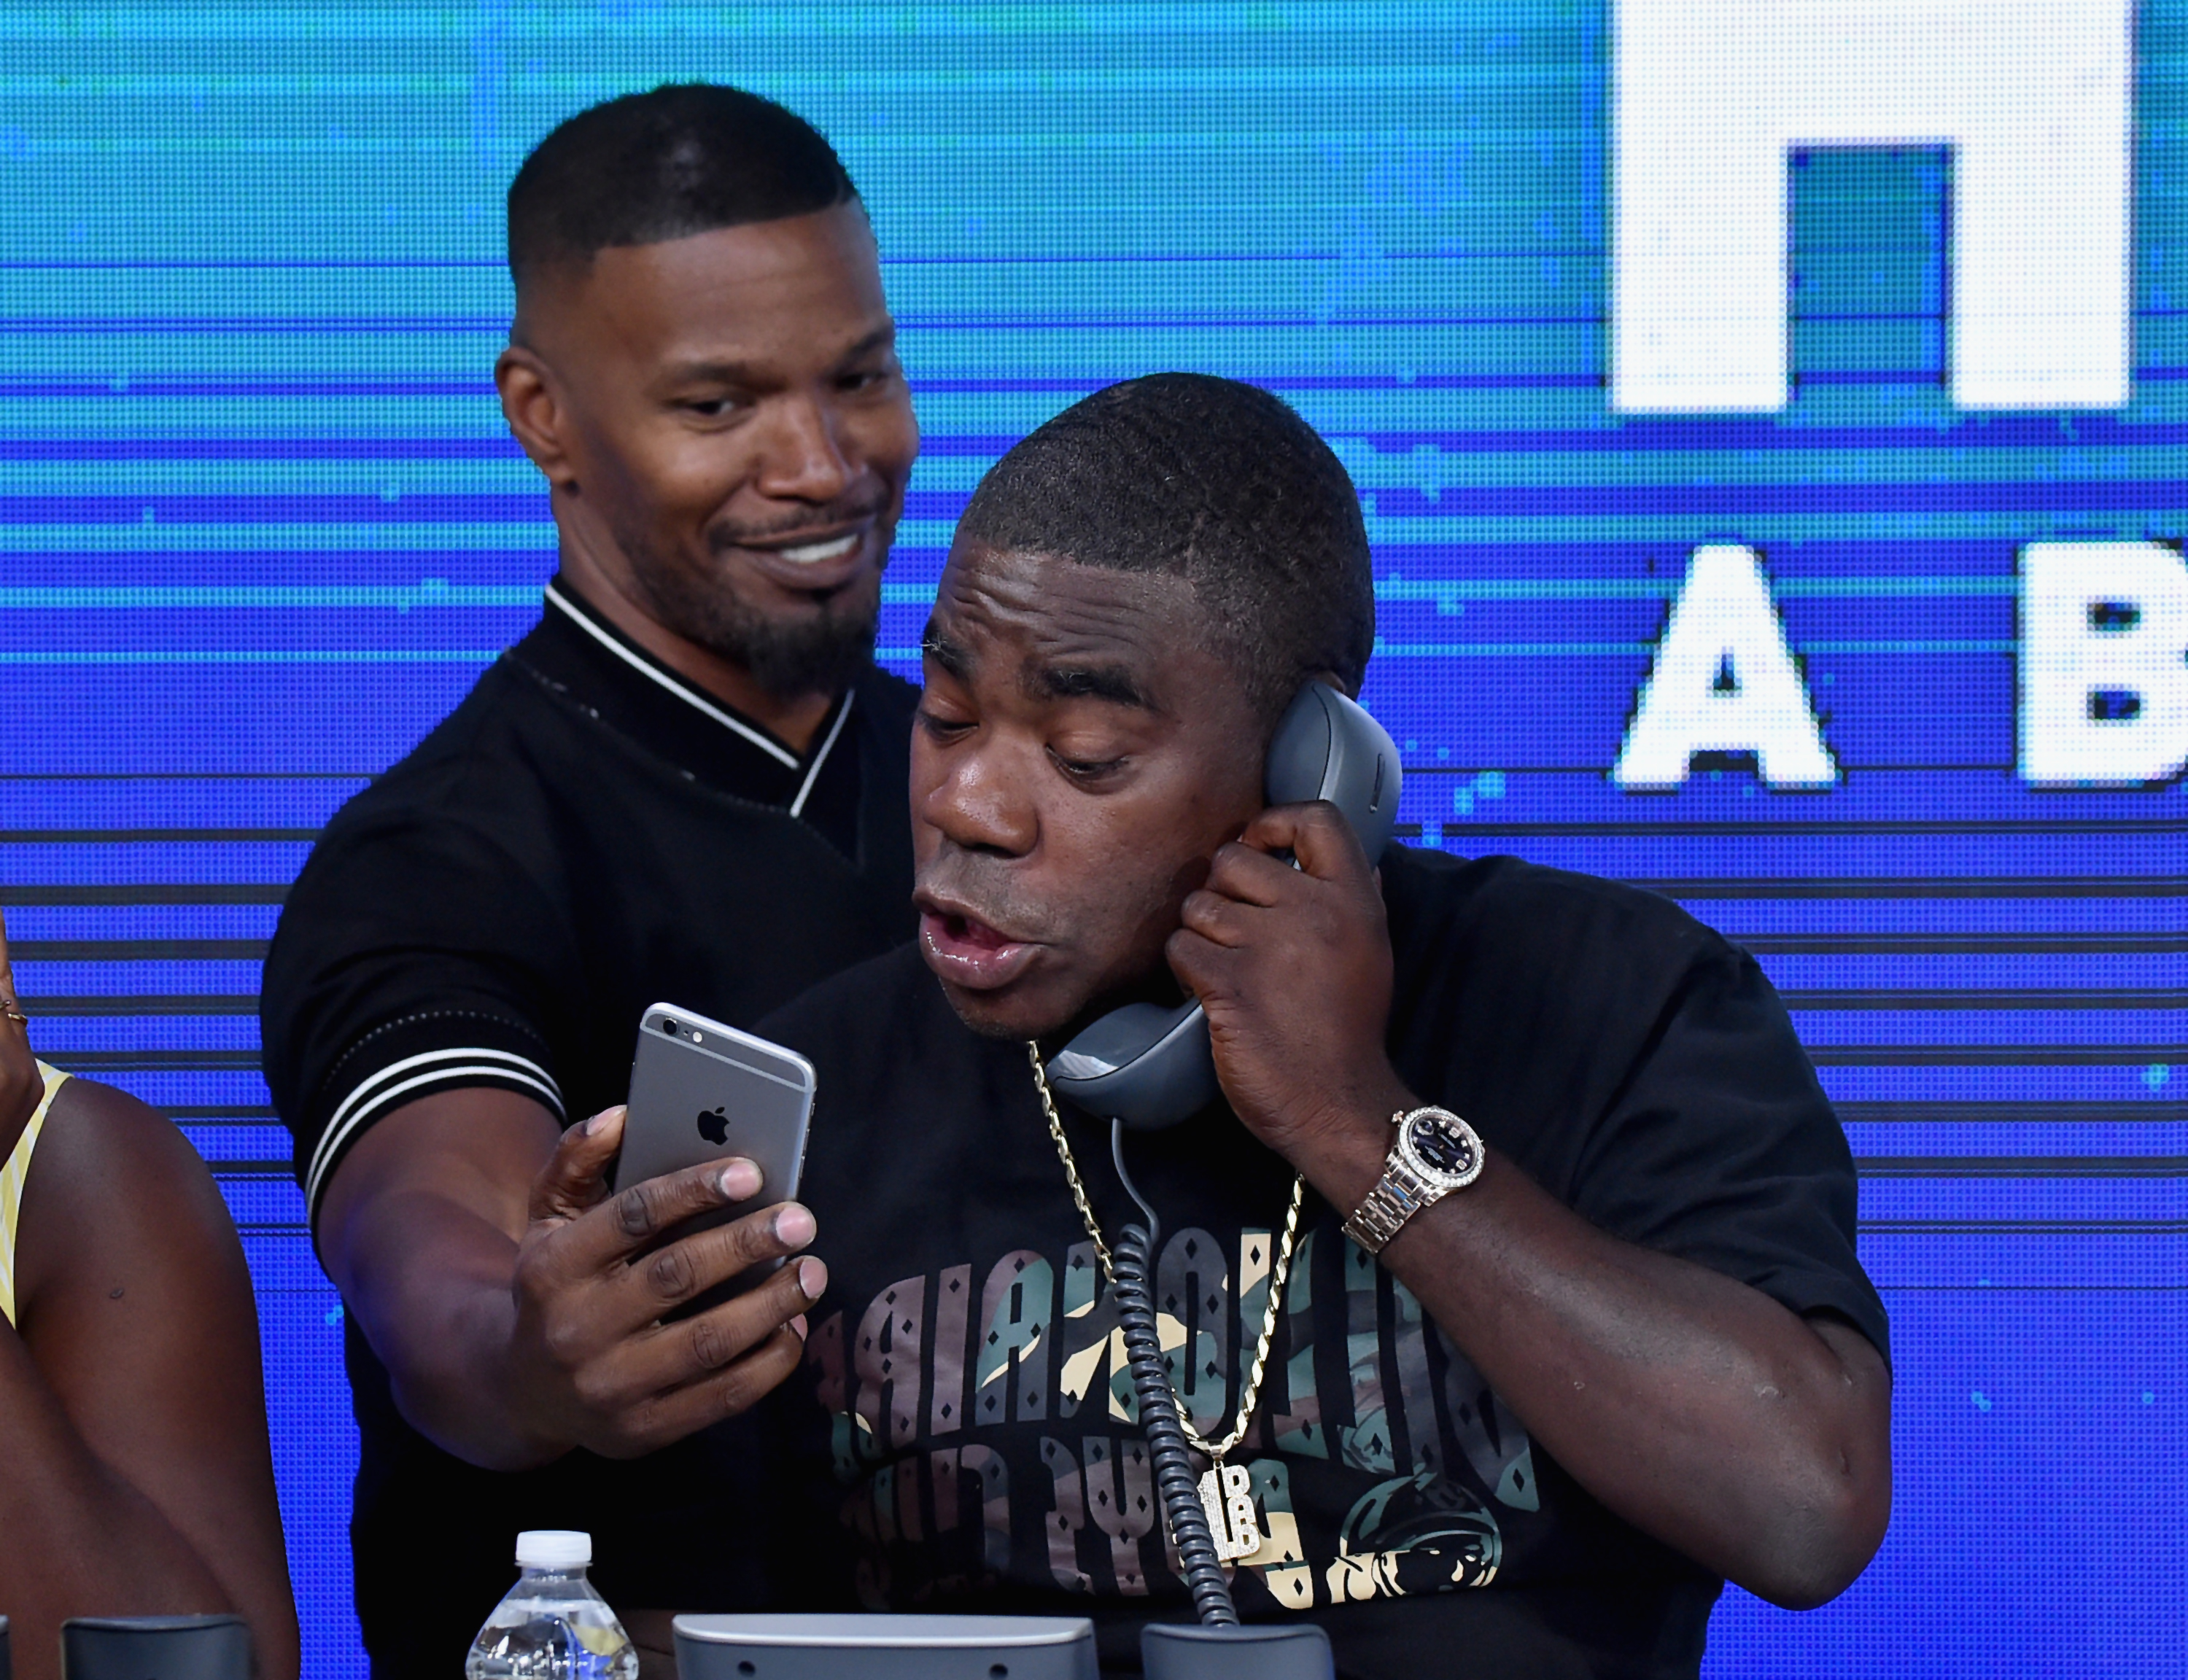 """<div class=""""meta image-caption""""><div class=""""origin-logo origin-image none""""><span>none</span></div><span class=""""caption-text"""">Jamie Foxx and Tracy Morgan attend the Hand in Hand benefit at ABC News' Good Morning America Times Square Studio in New York. (Theo Wargo/Hand in Hand/Getty Images)</span></div>"""